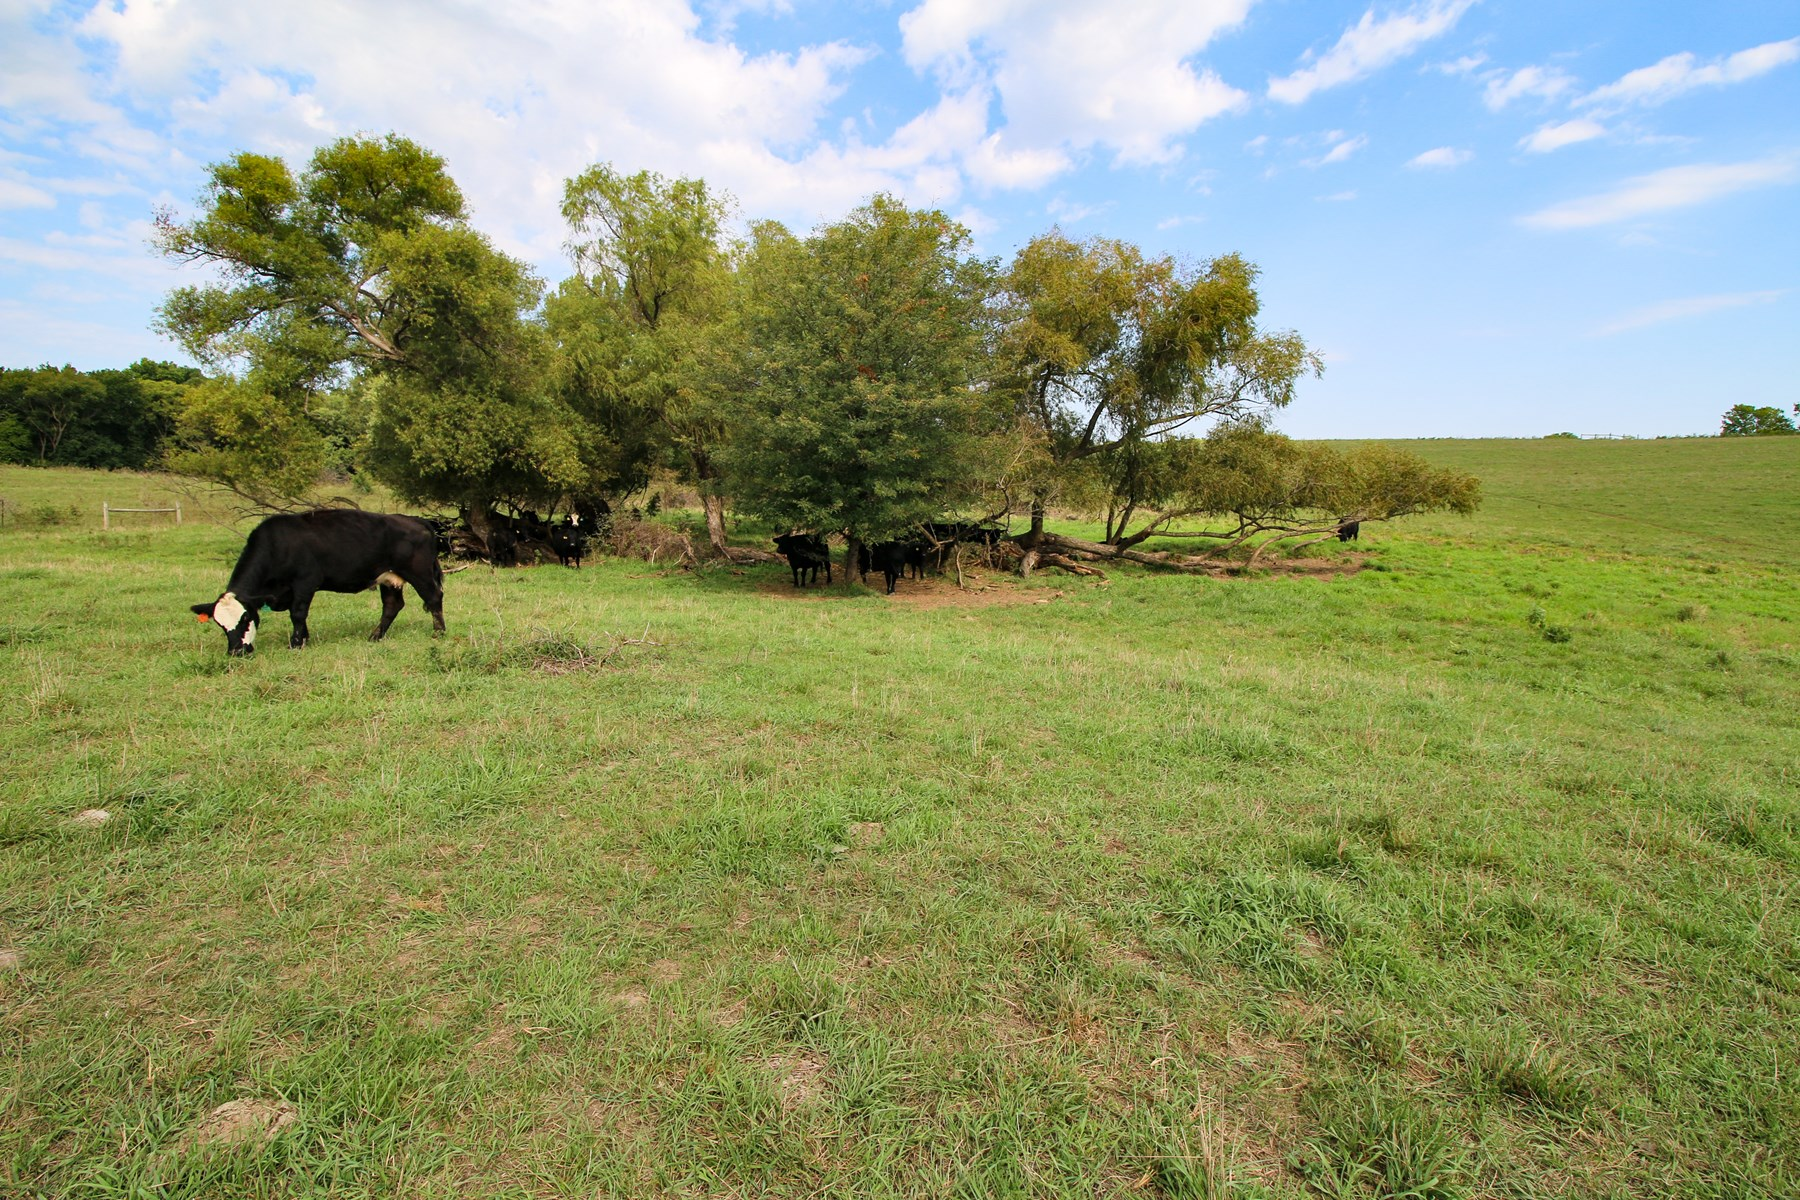 Kansas City Pasture Land For Sale at Auction